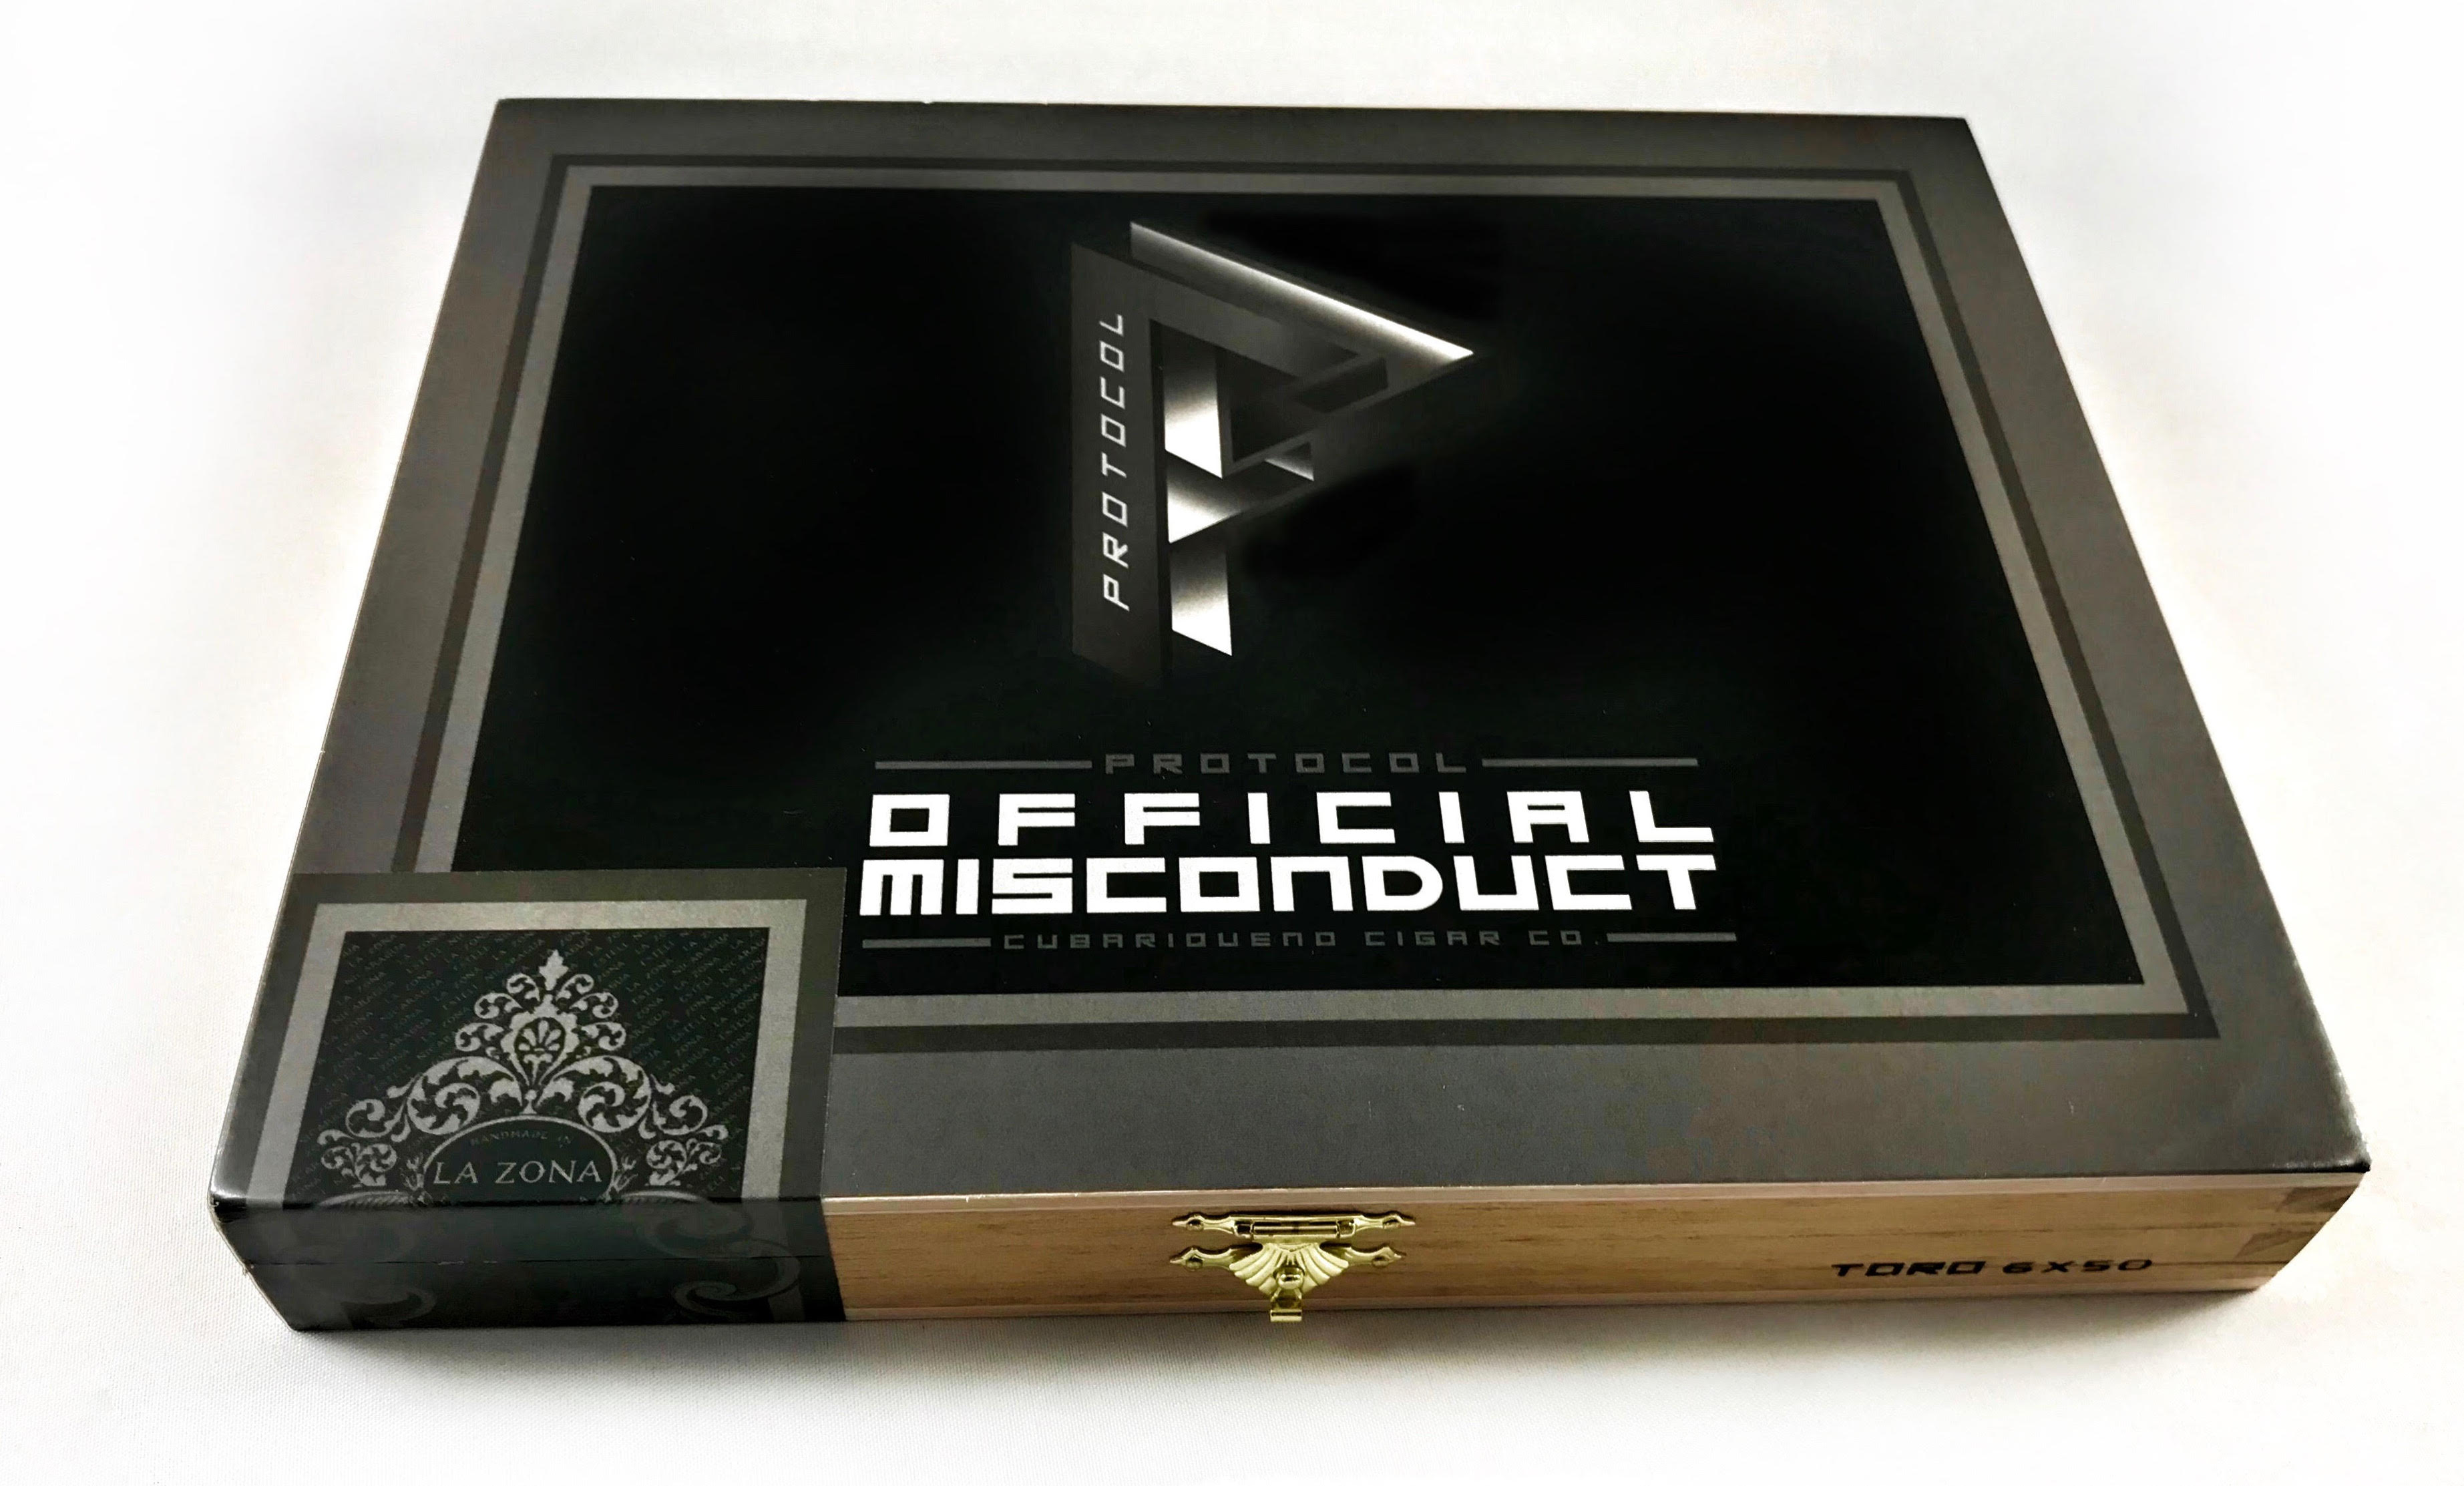 Protocol Official Misconduct_